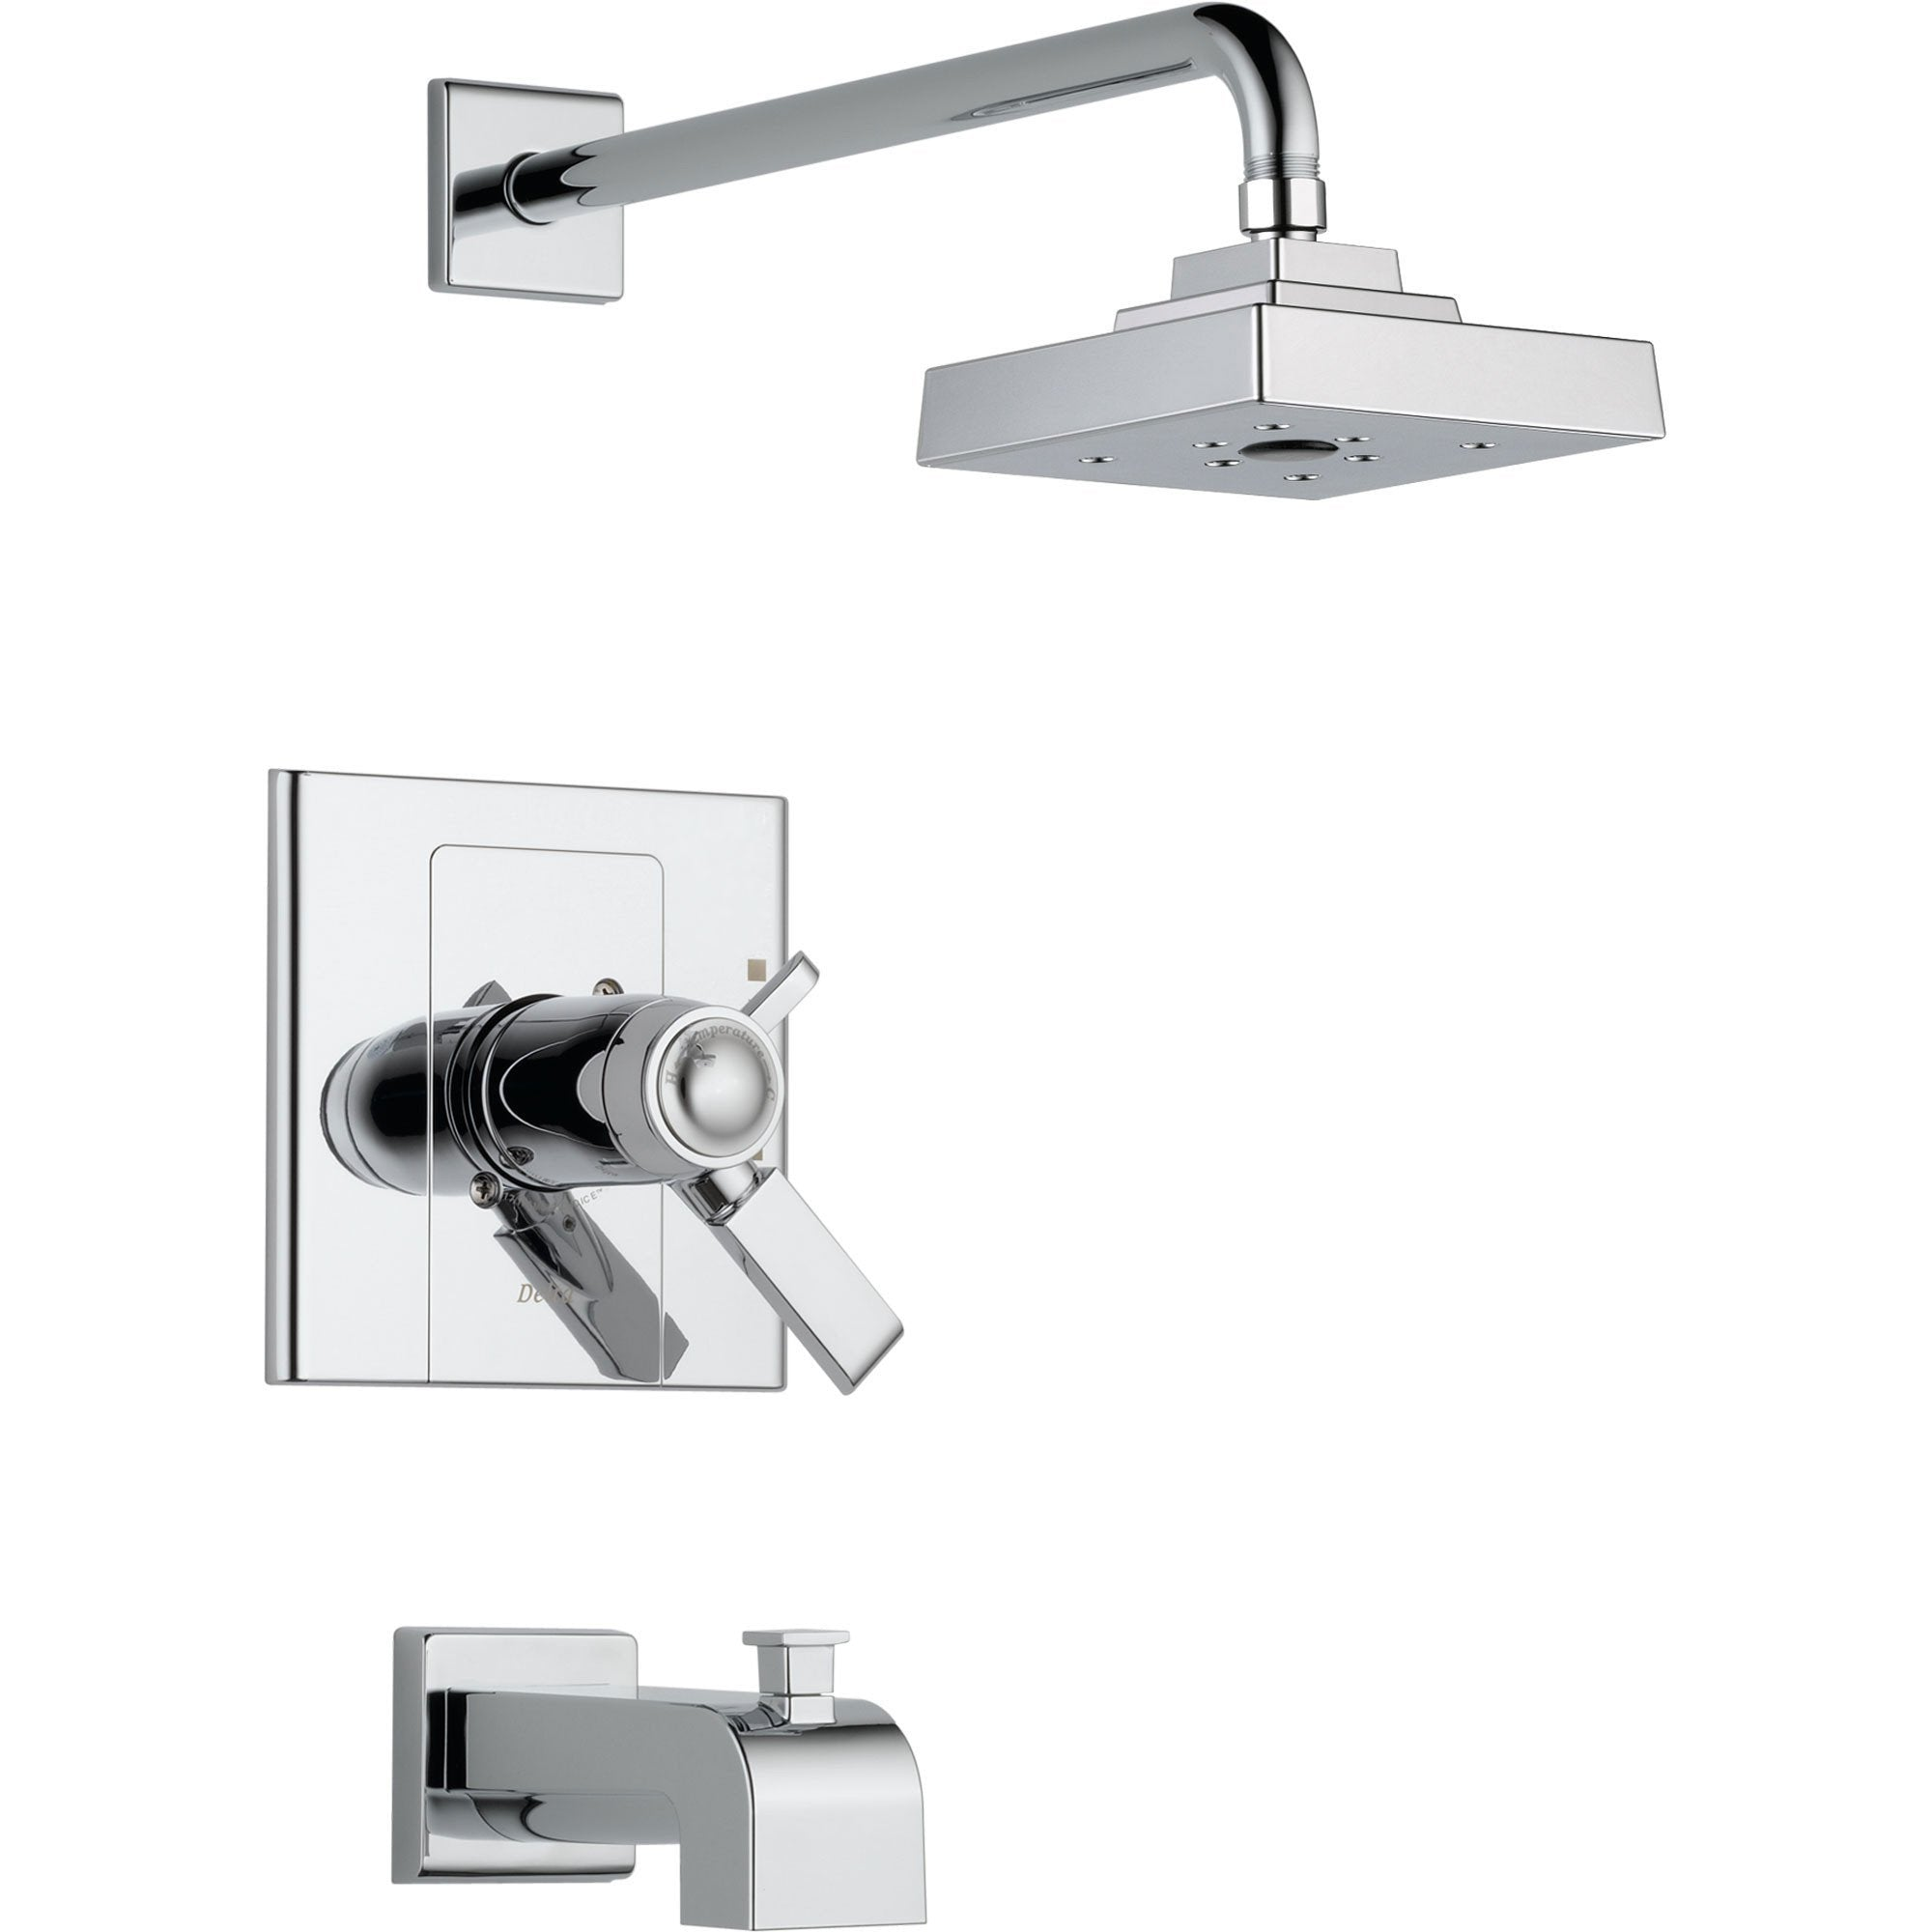 Delta Arzo Thermostatic Dual Control Chrome Tub & Shower Faucet with Valve D540V